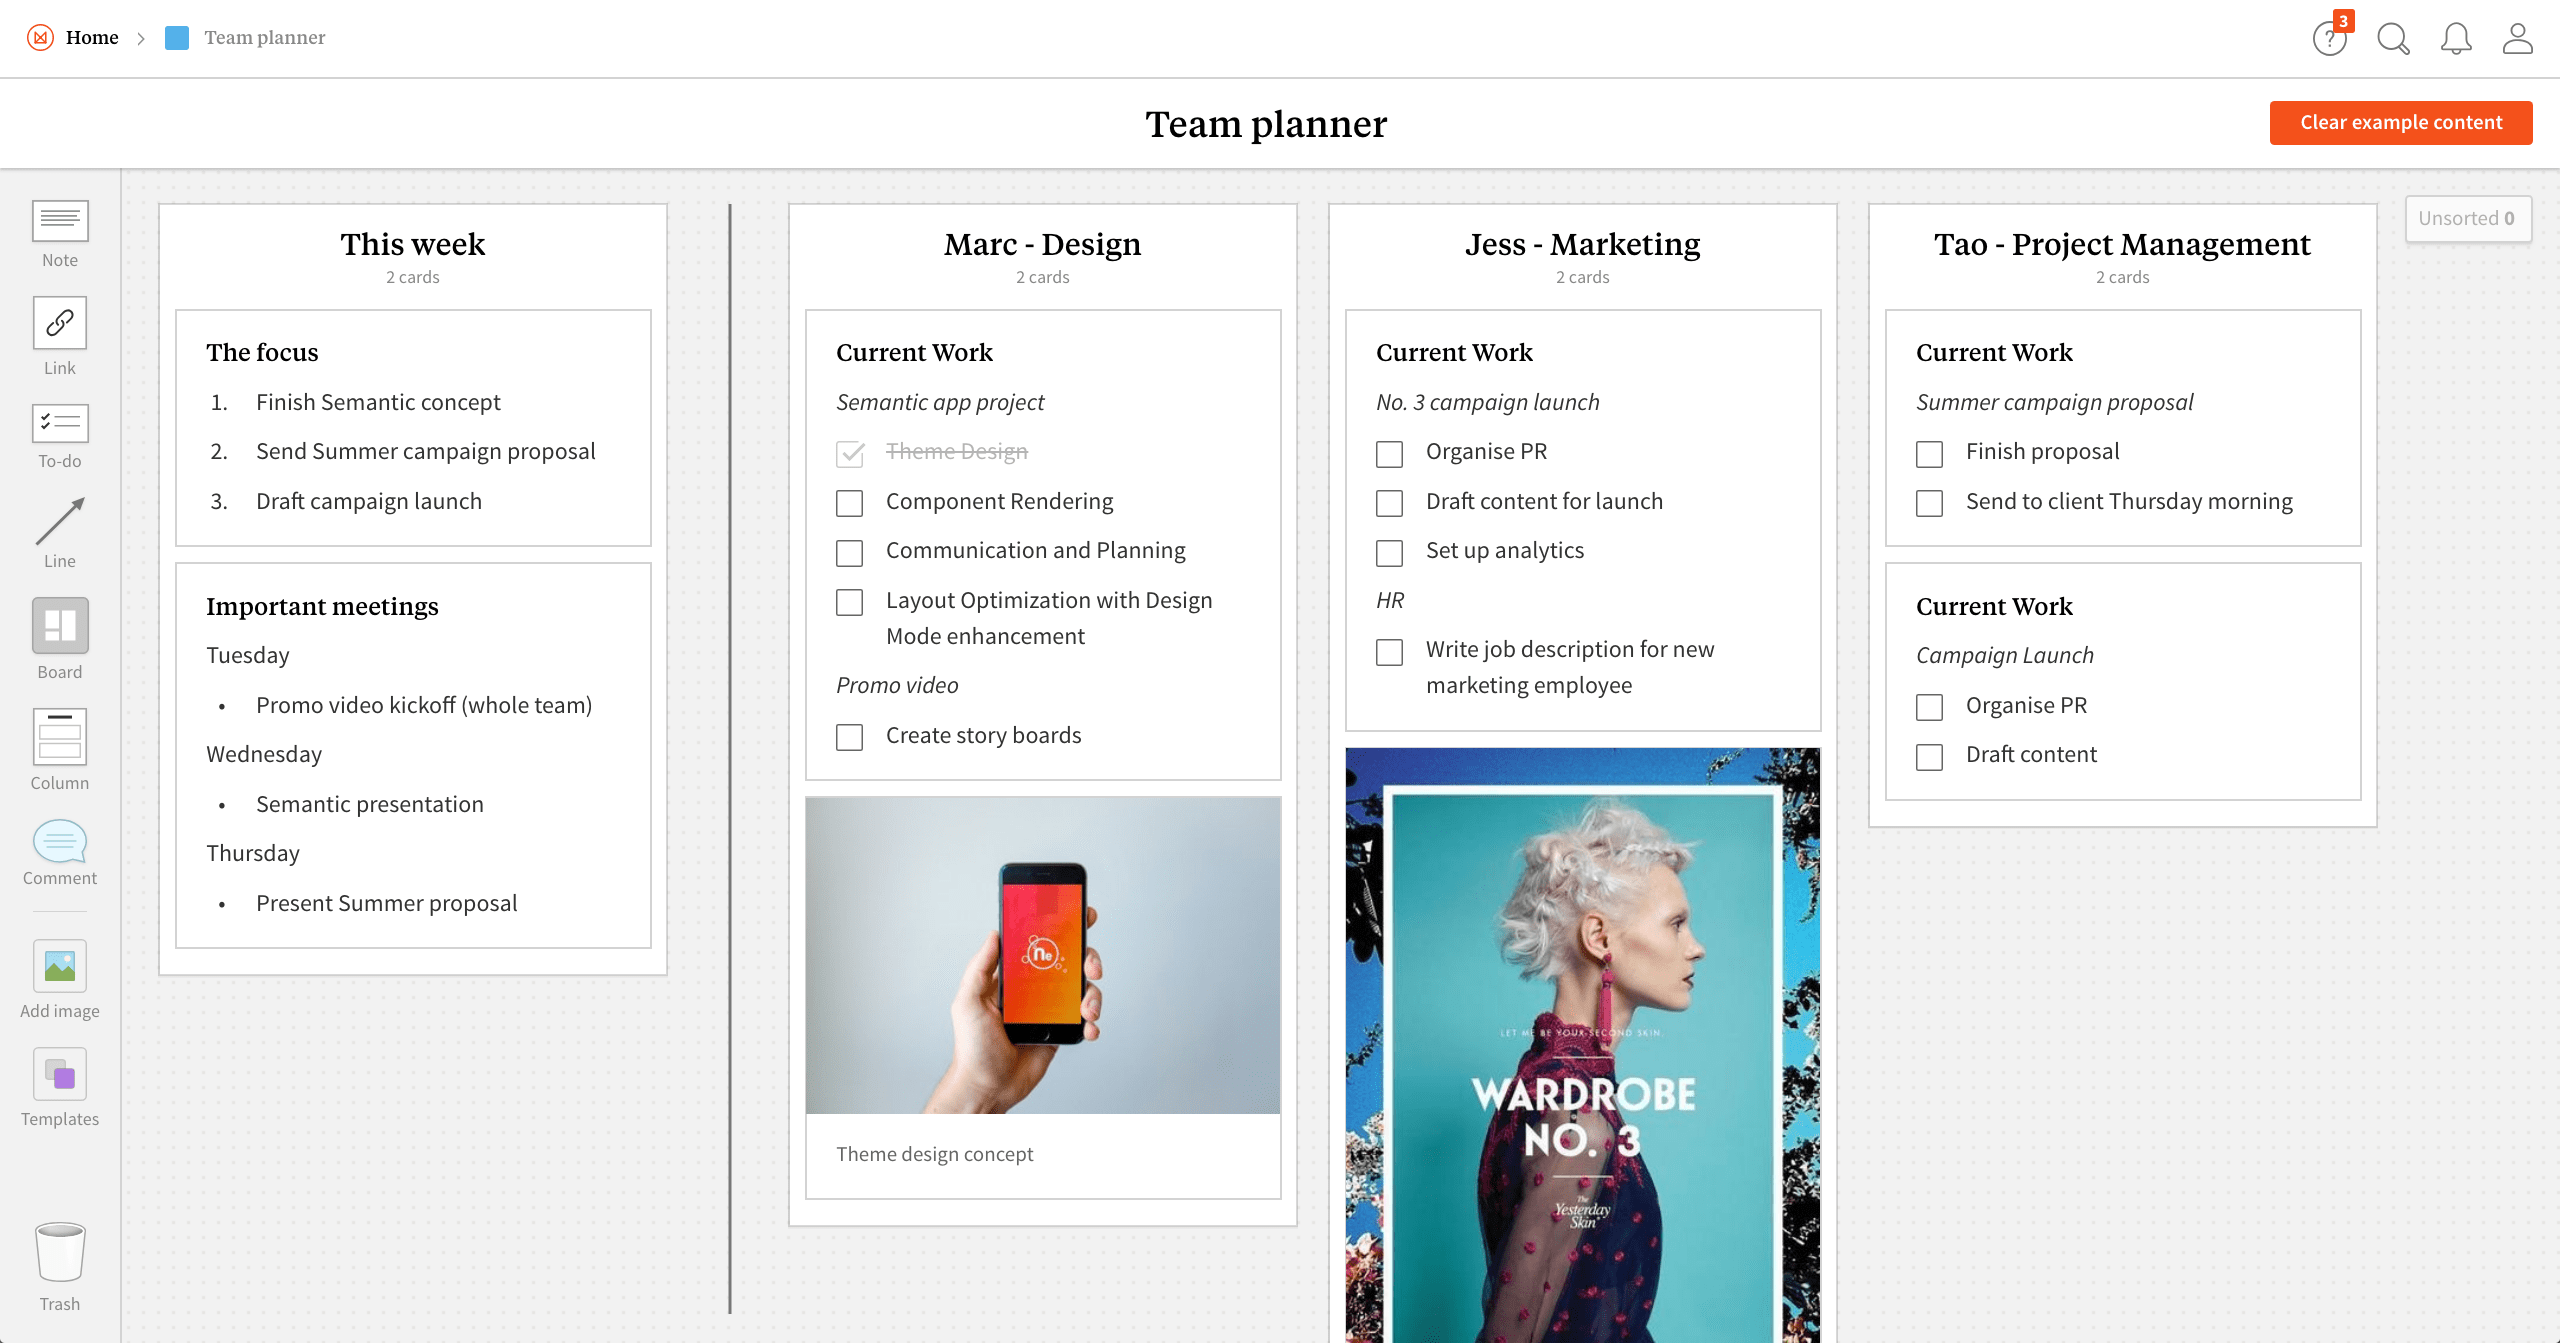 Completed Team Planner template in Milanote app